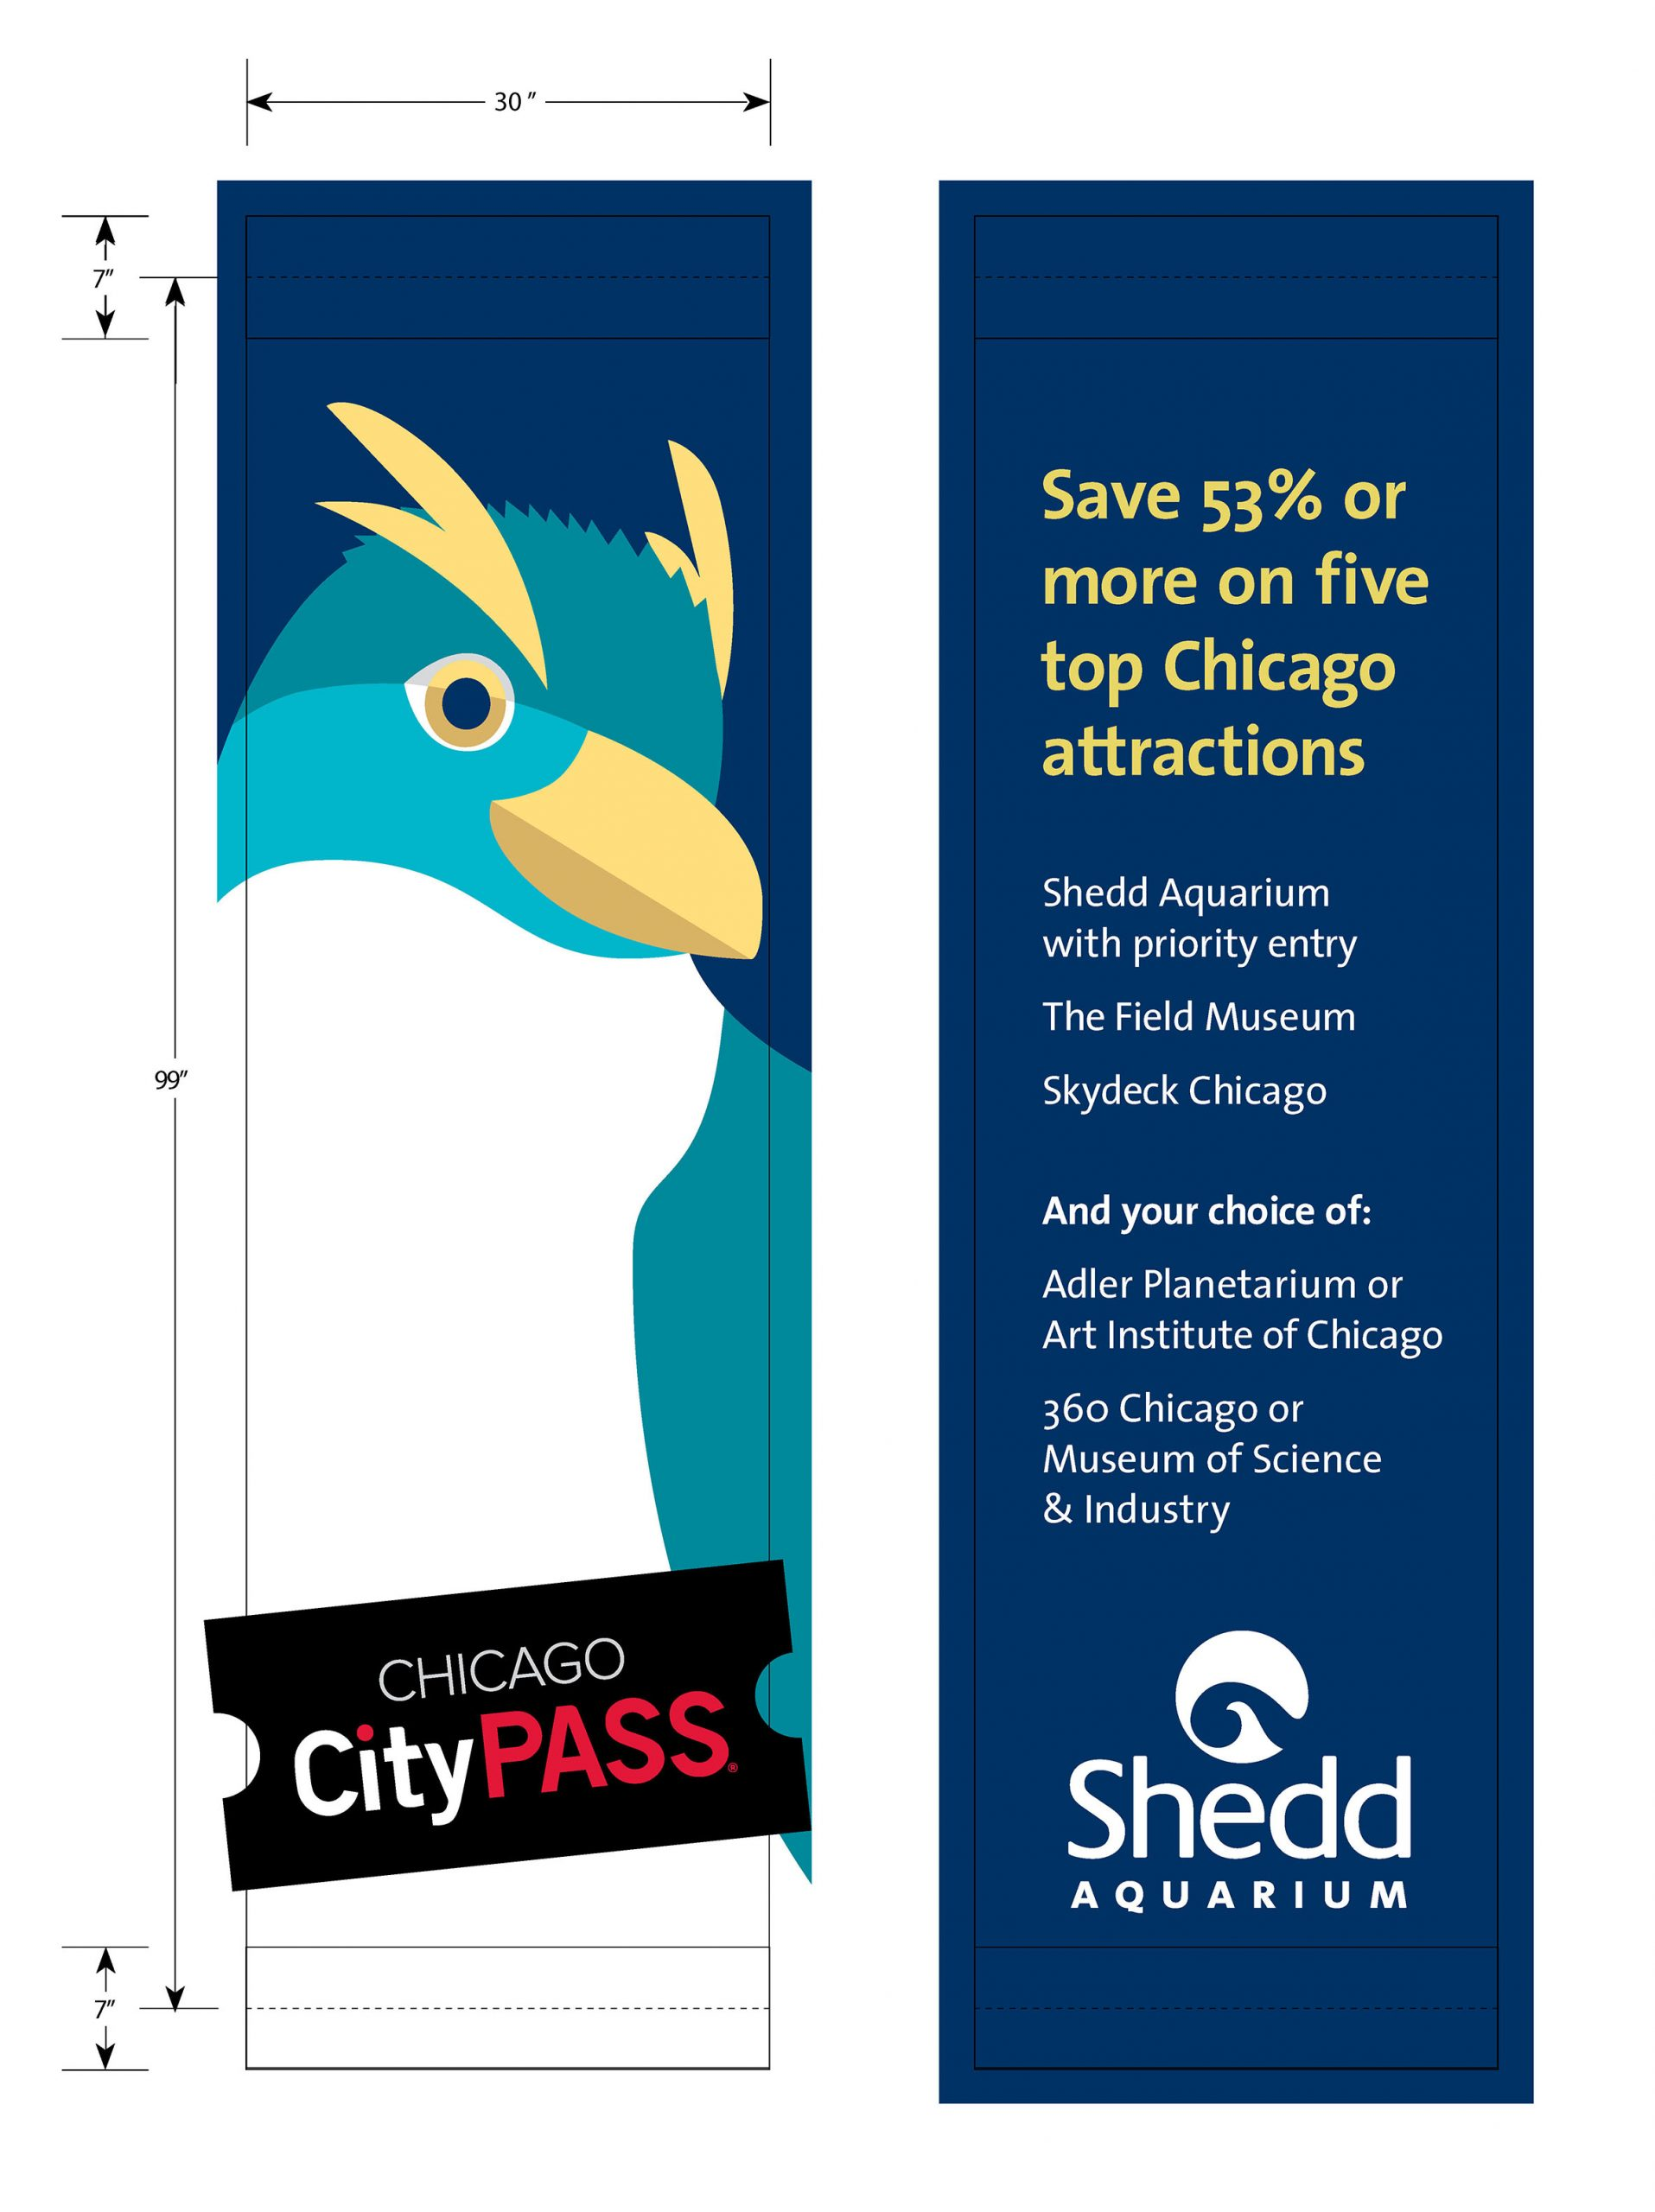 A set of street banners. The left one shows information about memberships, and the right one depicts a stylized illustrated penguin in teal, white and yellow.